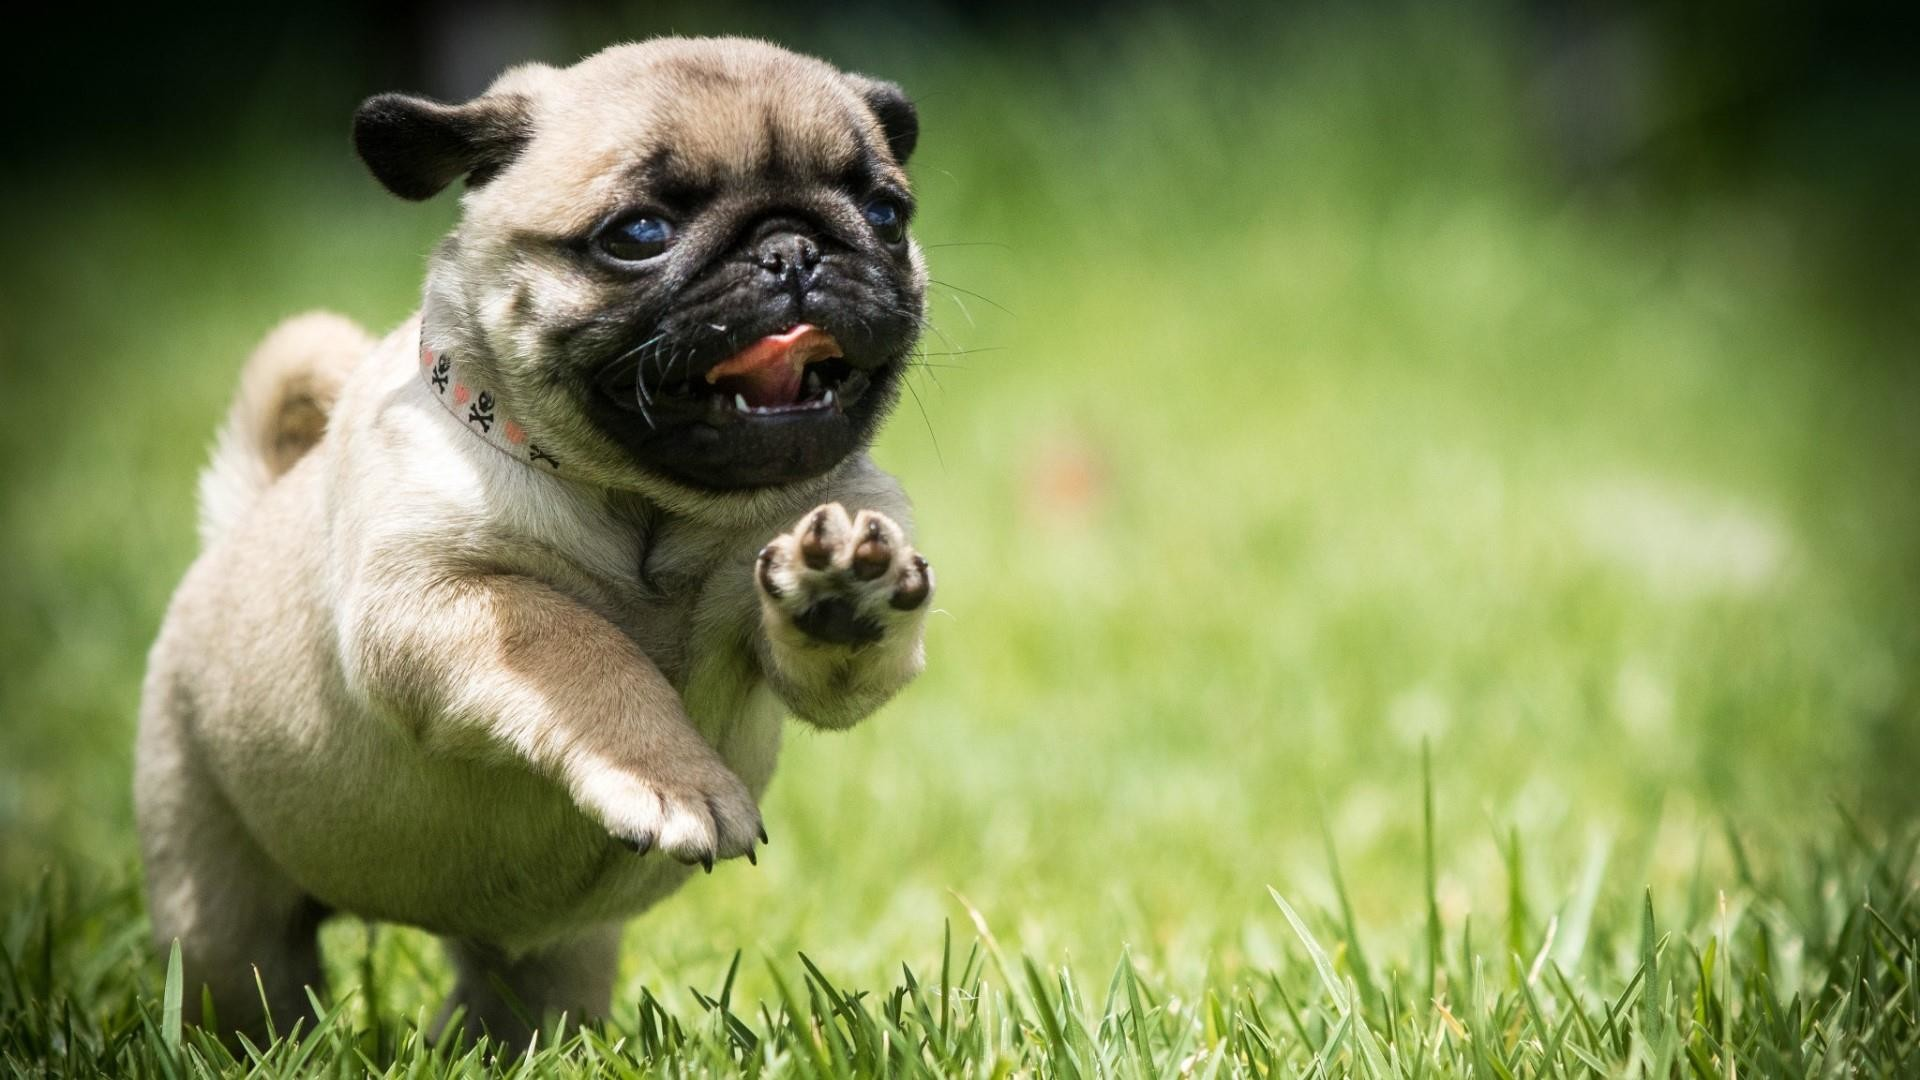 Cute Puppies Full Hd Wallpapers Pug Puppy Wallpaper 66 Images